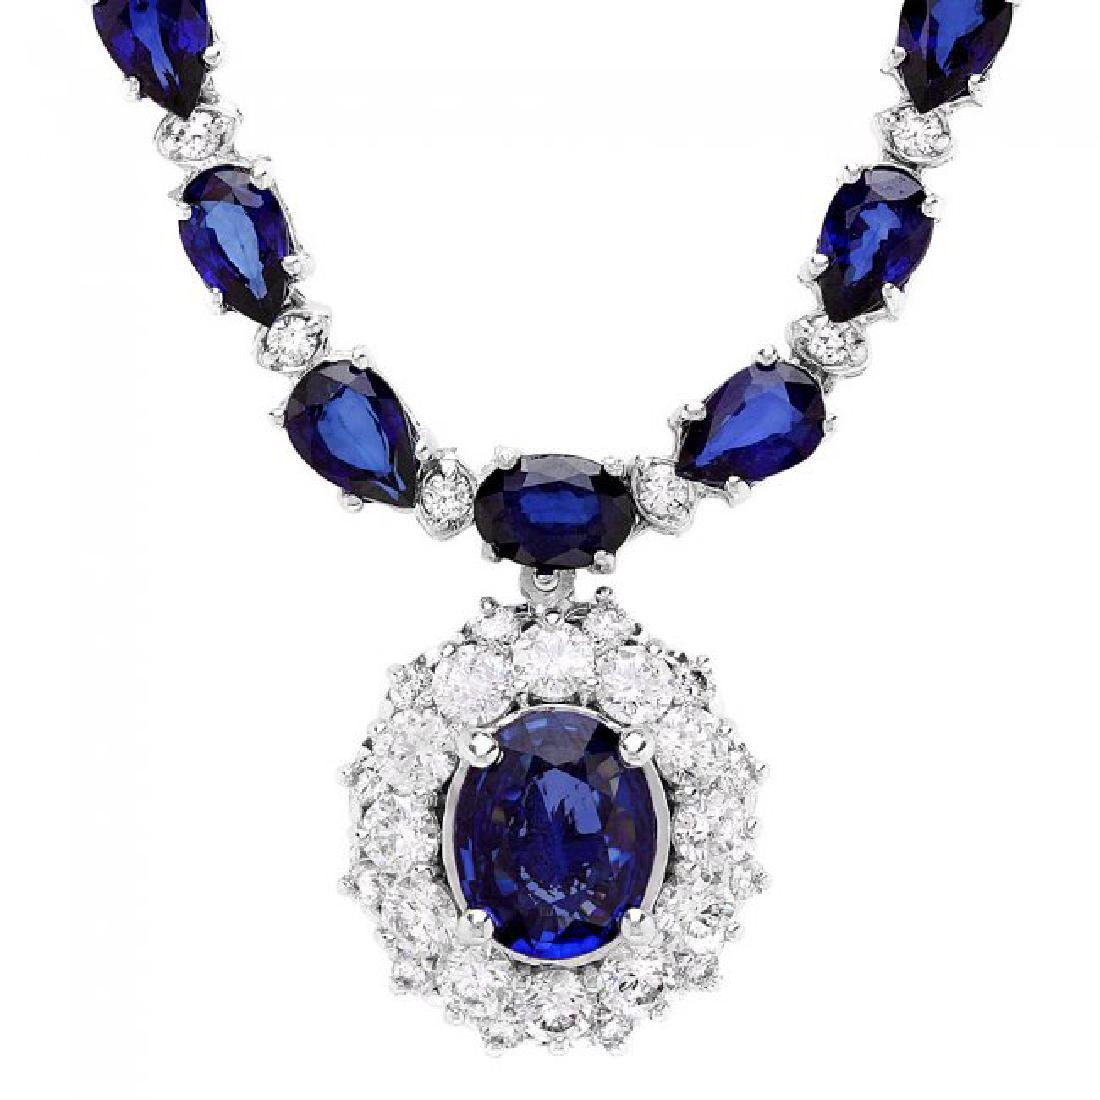 14k Gold 28ct Sapphire 3.35ct Diamond Necklace - 2